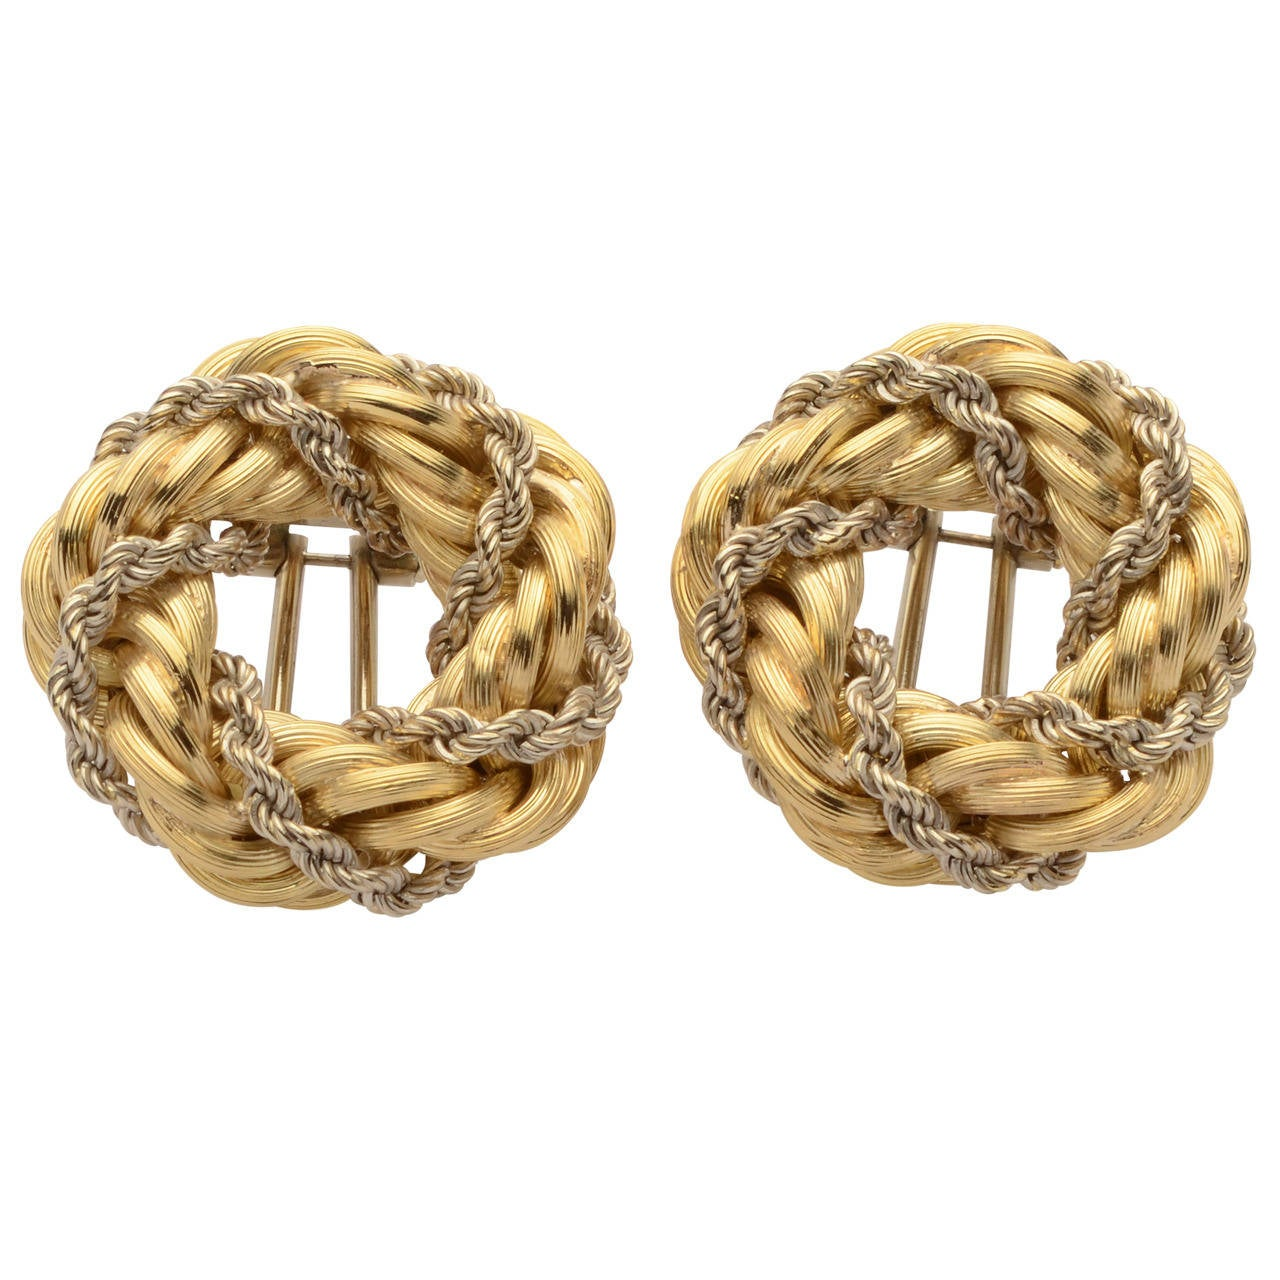 Two Color Gold Rope Twist Earrings